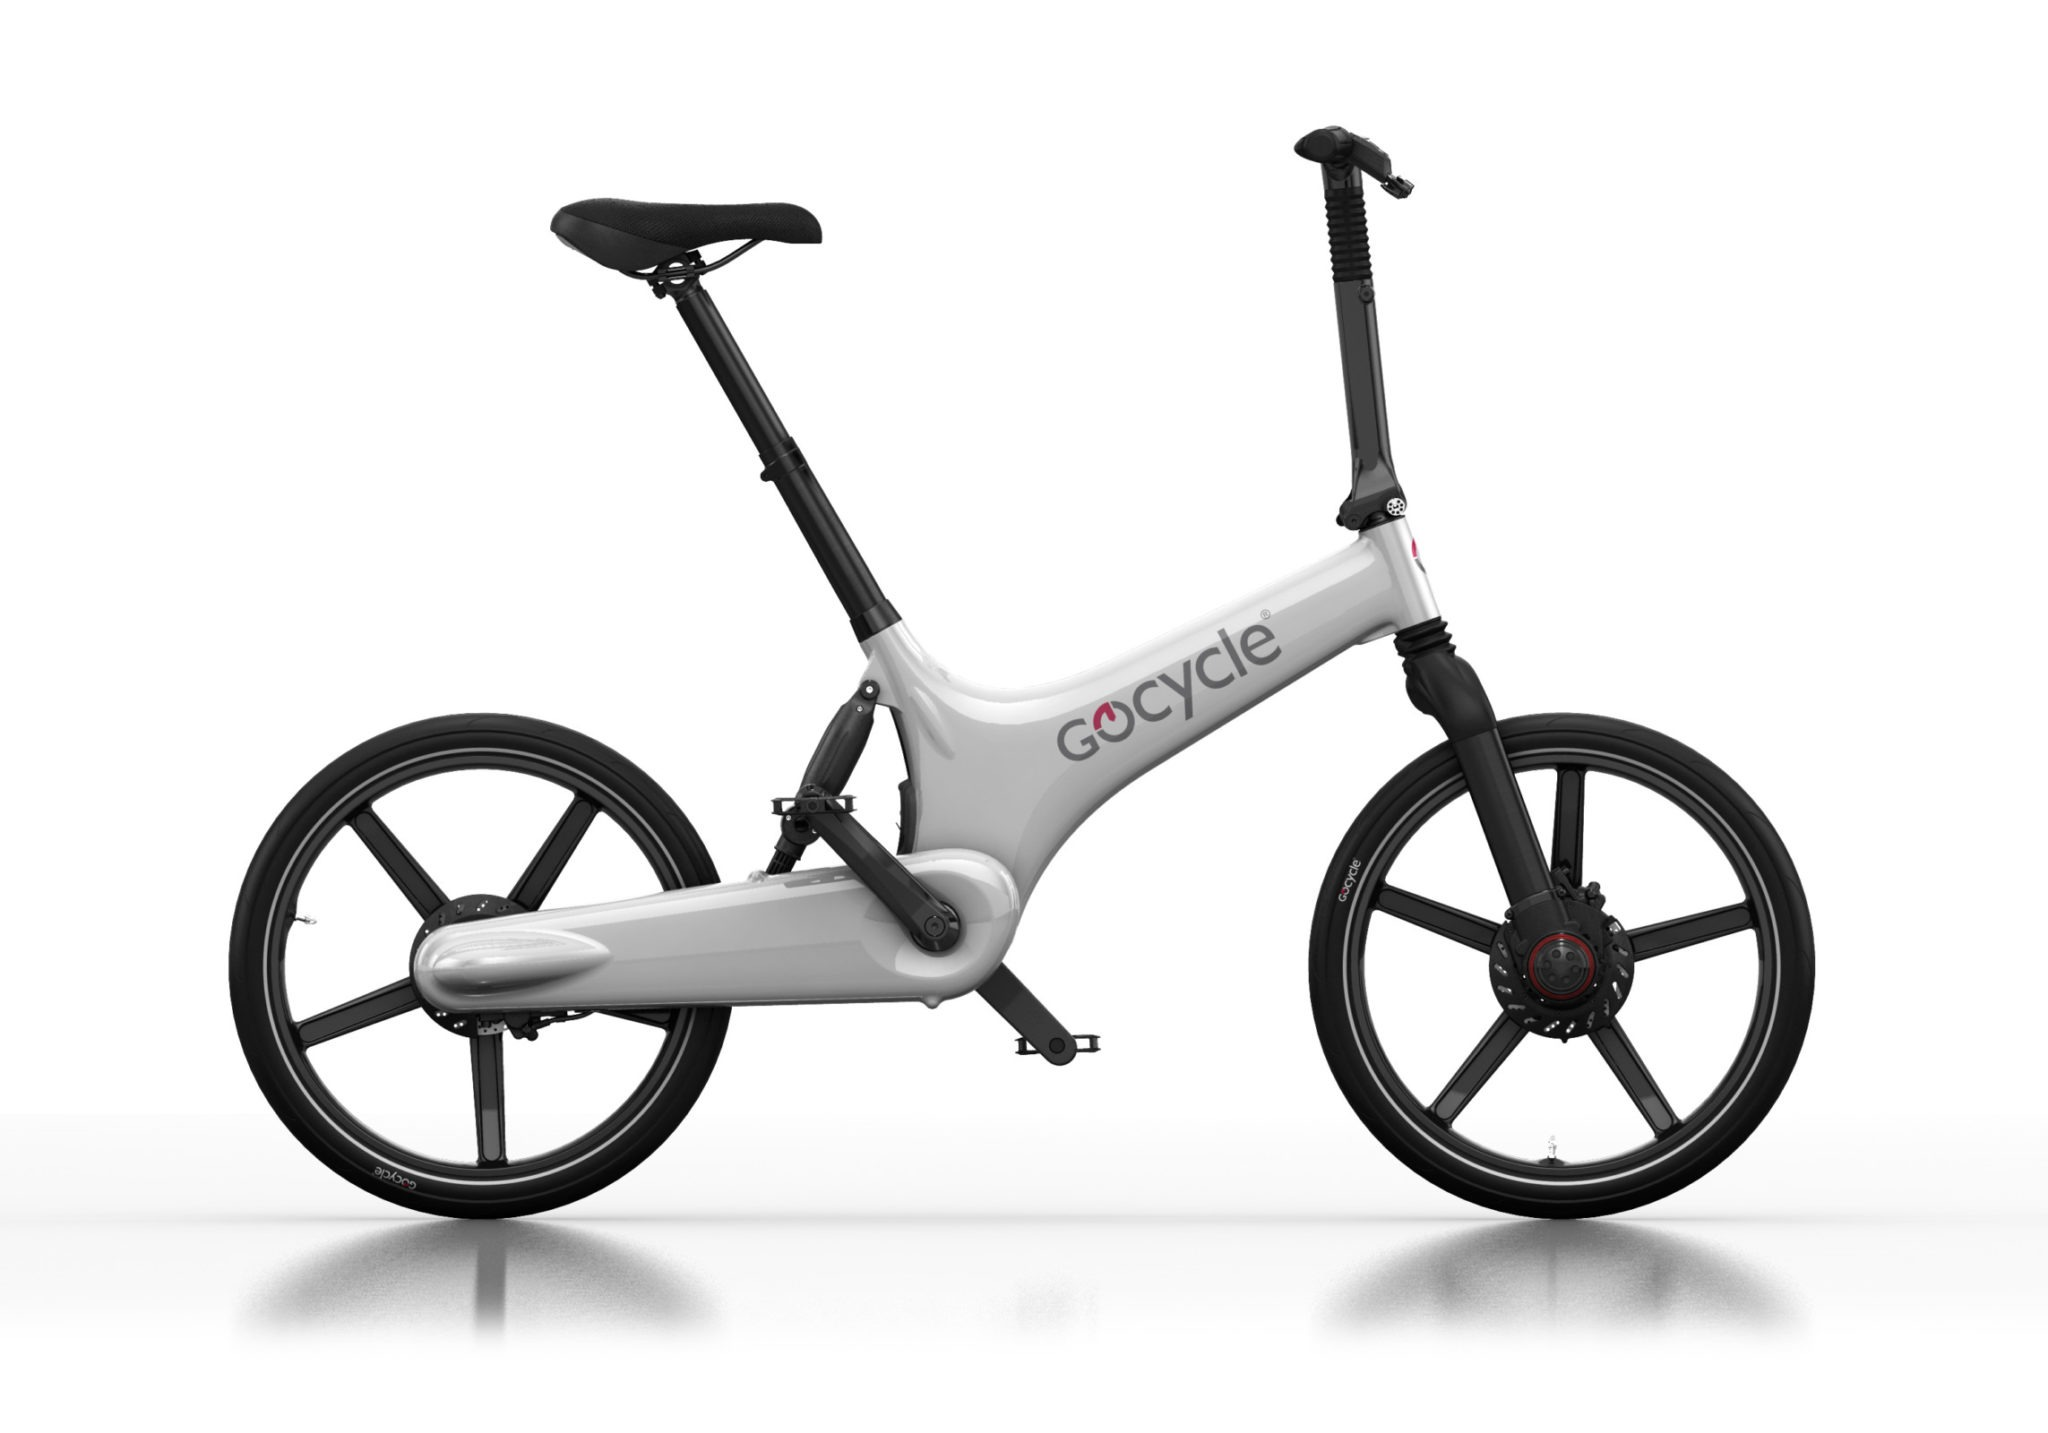 Gocycle G3 bele barve